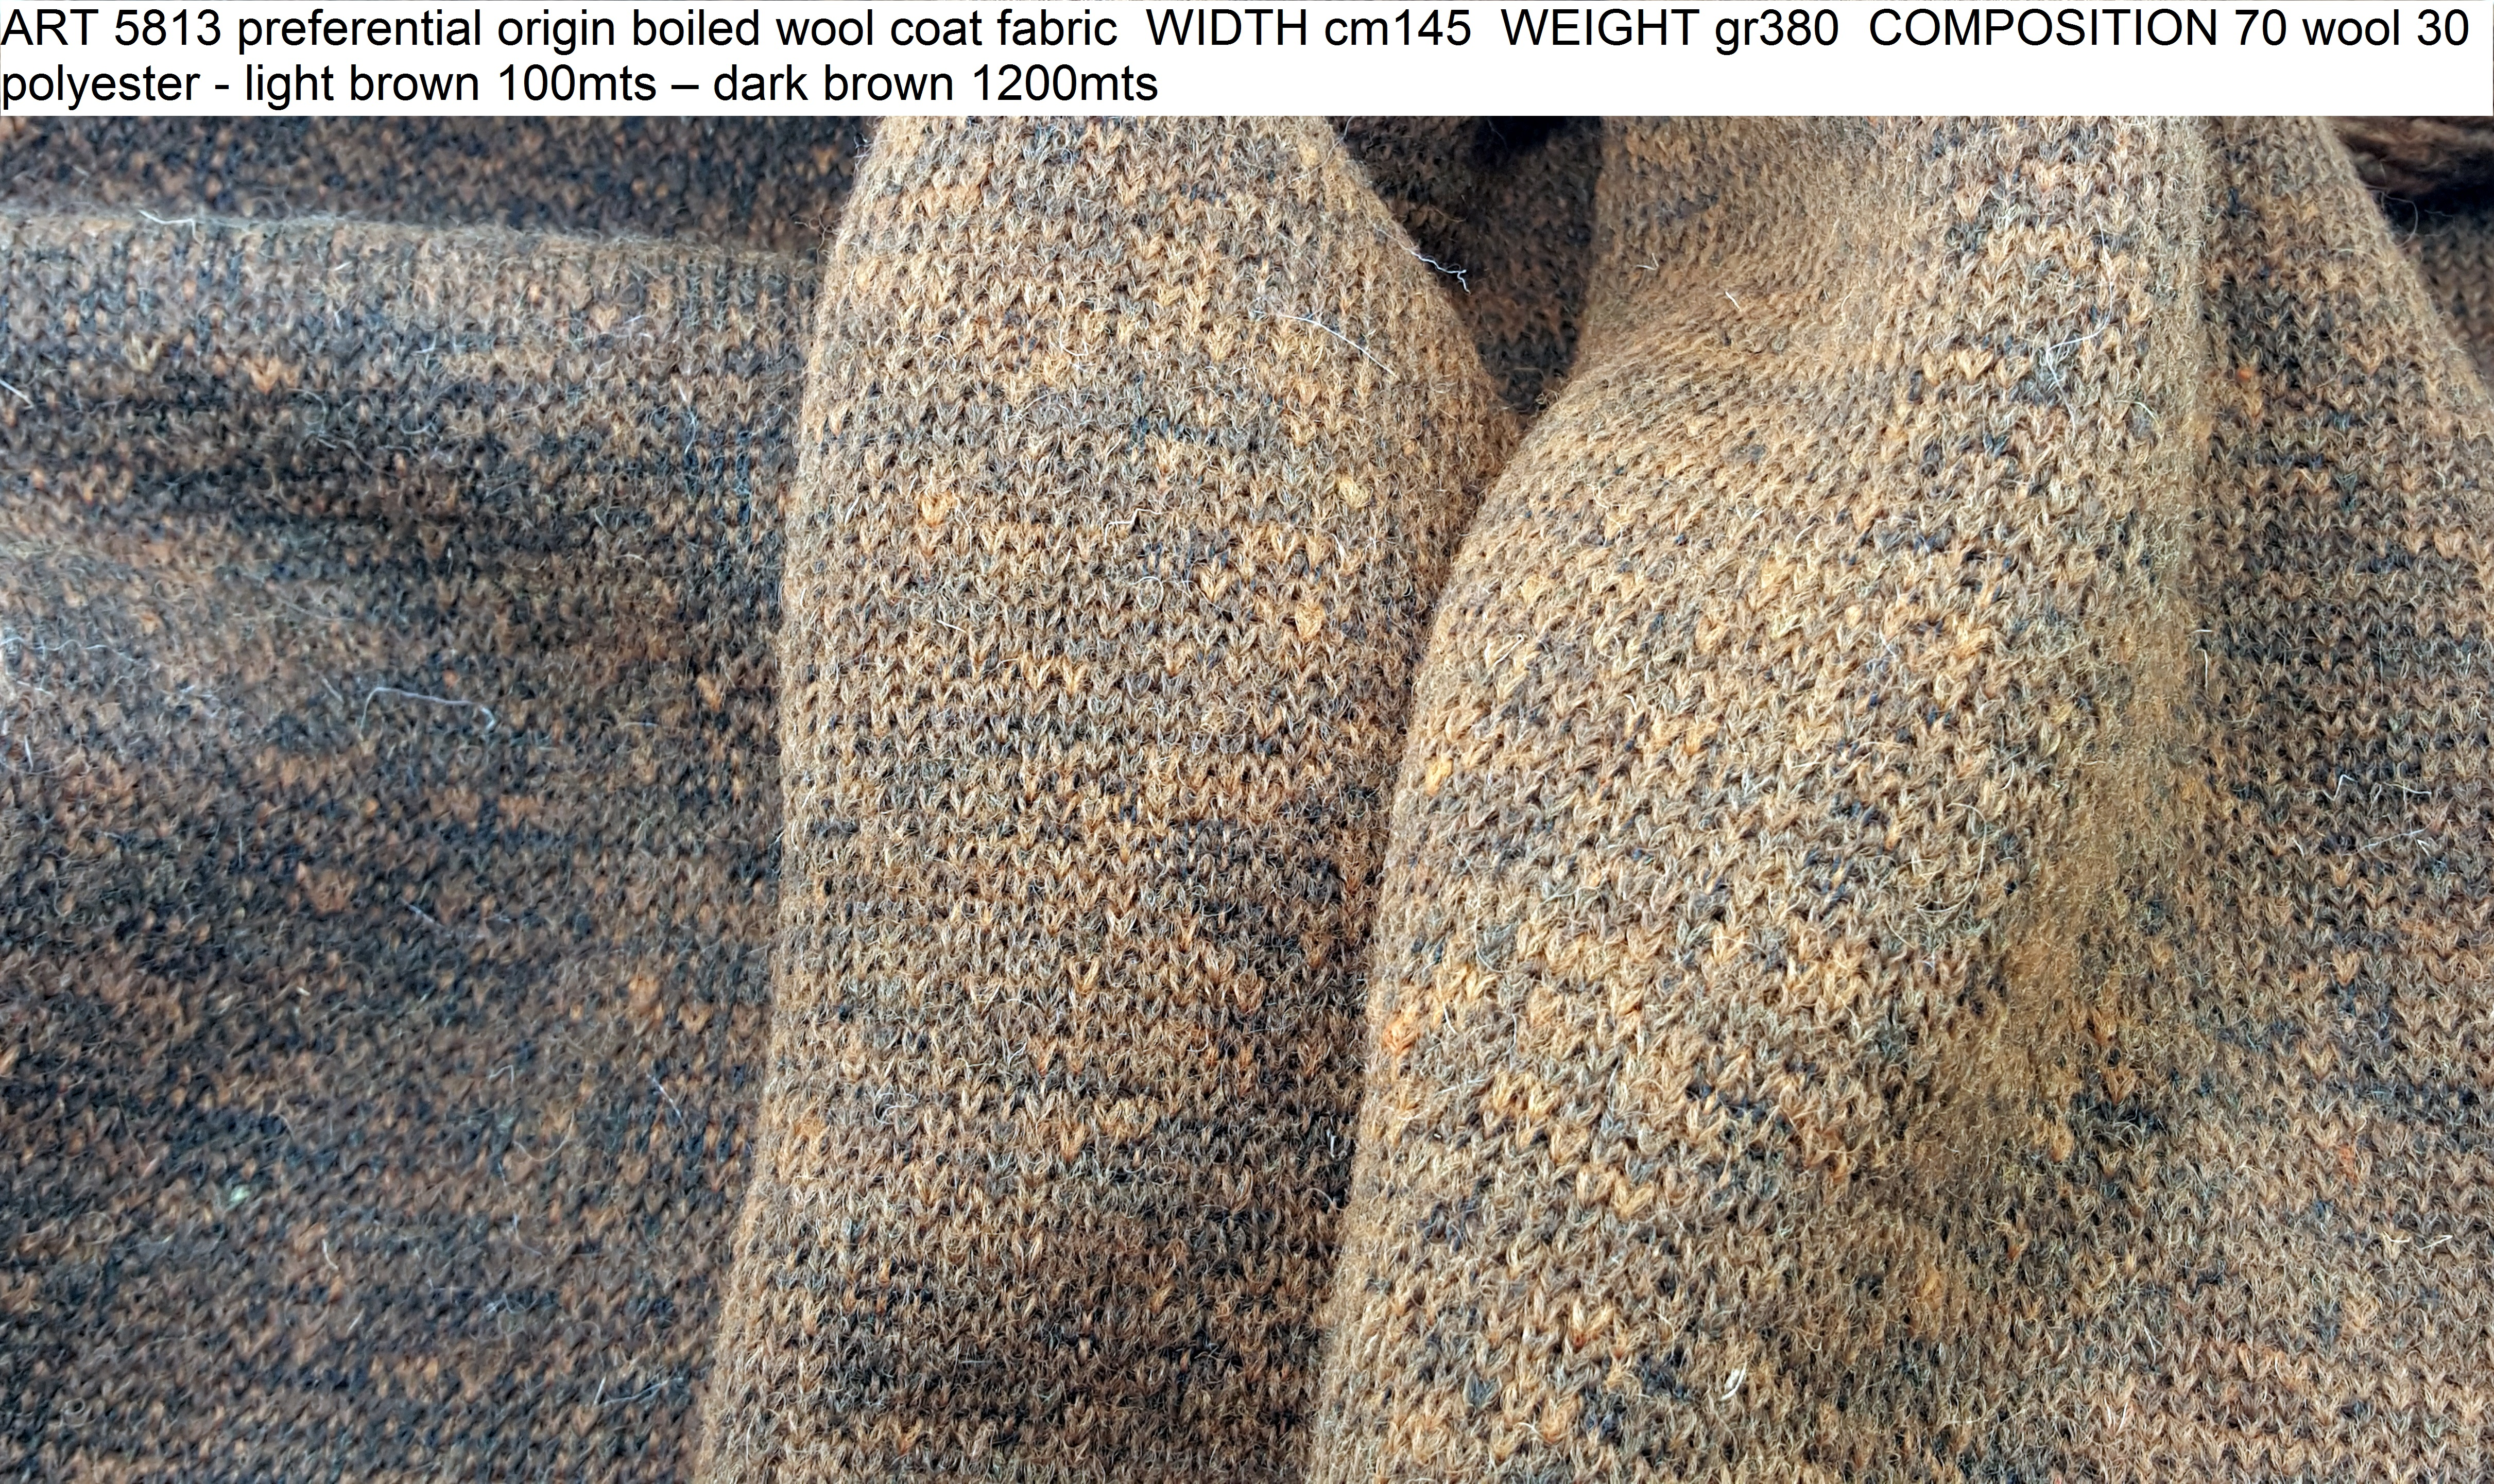 ART 5813 preferential origin boiled wool coat fabric WIDTH cm145 WEIGHT gr380 COMPOSITION 70 wool 30 polyester - light brown 100mts – dark brown 1200mts